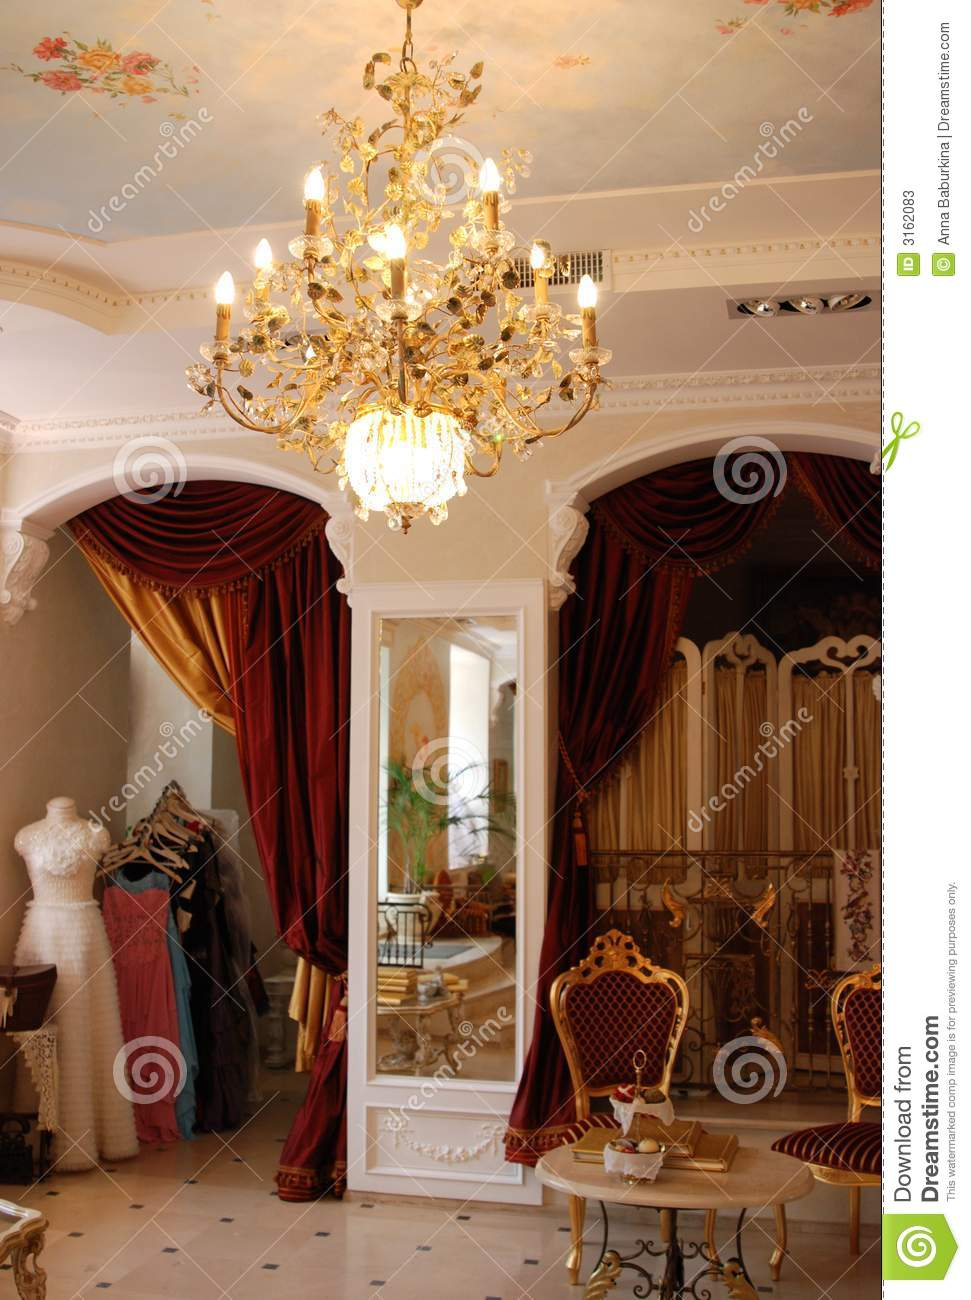 Interior in classic style stock image image of classic for Classic style interior